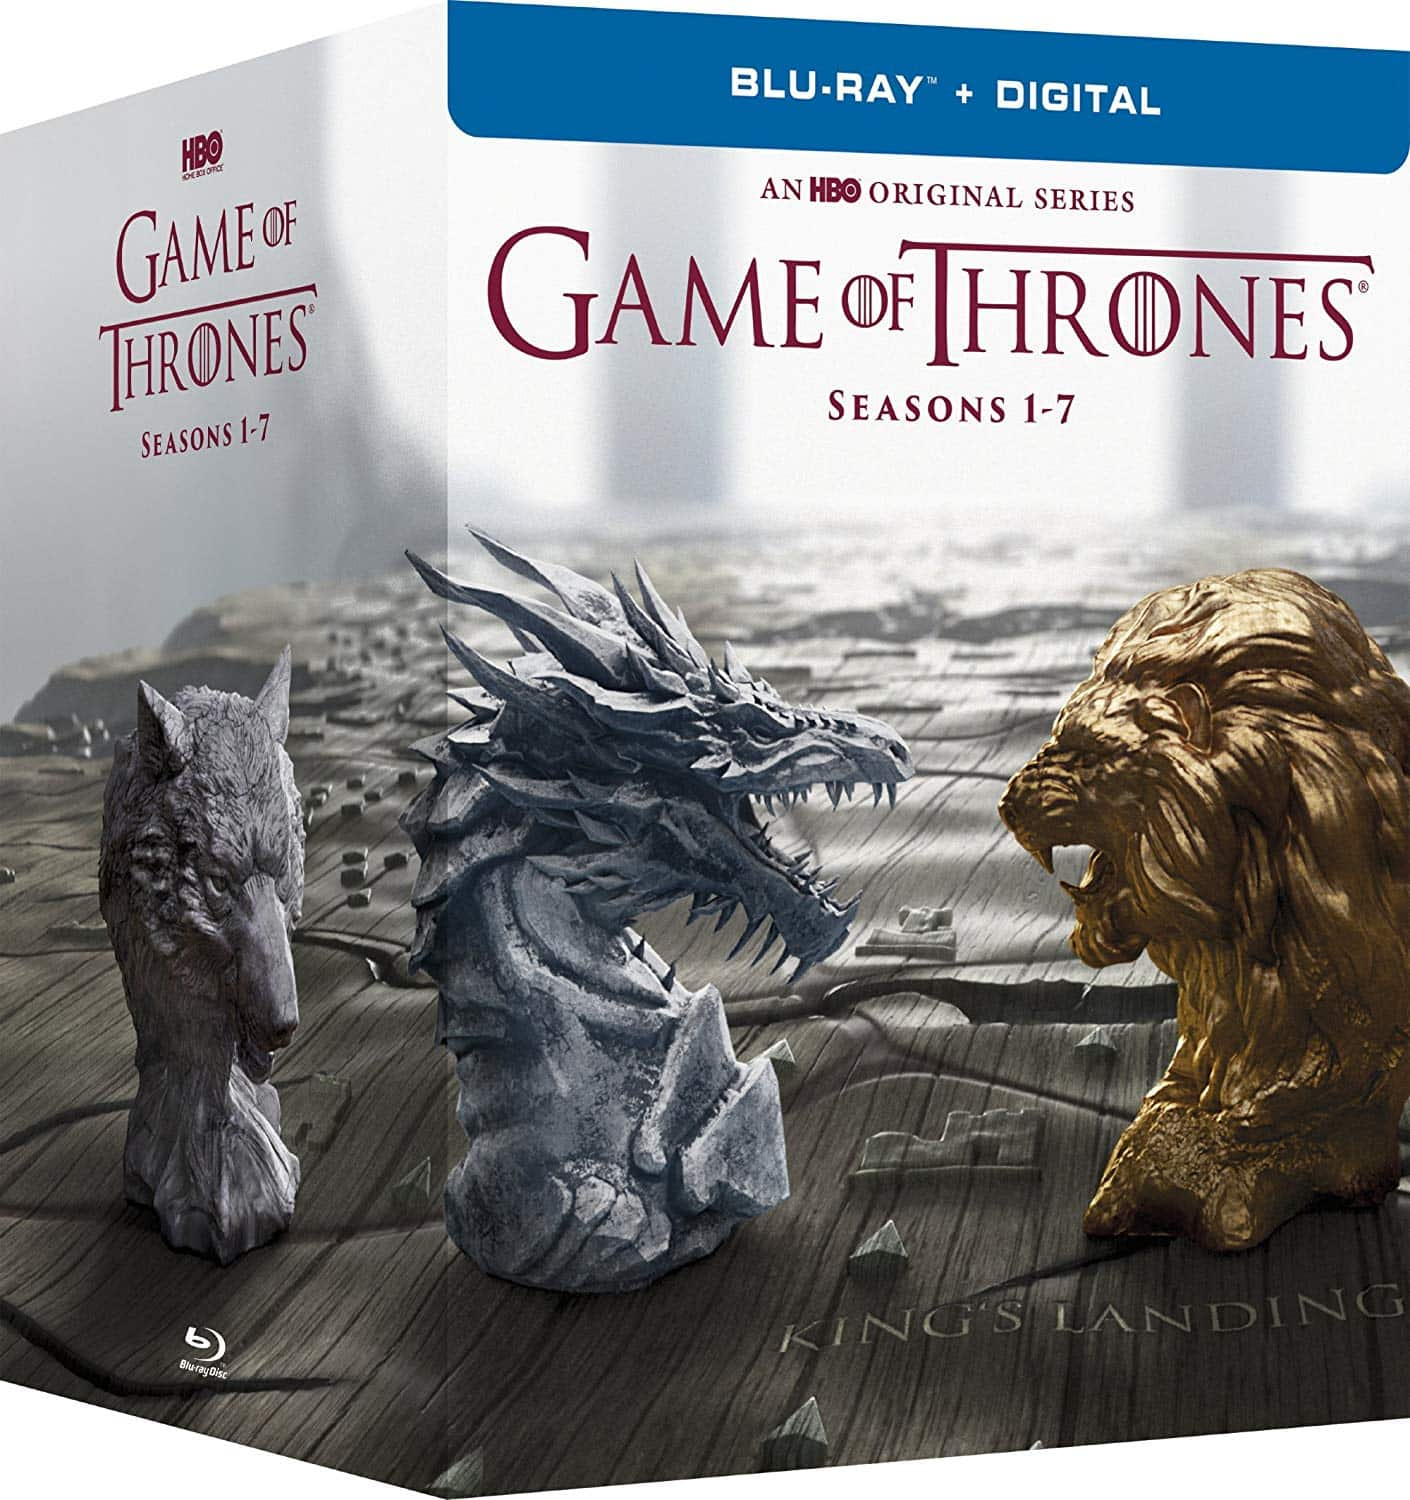 Prime Members: Game of Thrones: The Complete Seasons 1-7 (Blu-Ray + Digital HD) $74.99 + Free Shipping